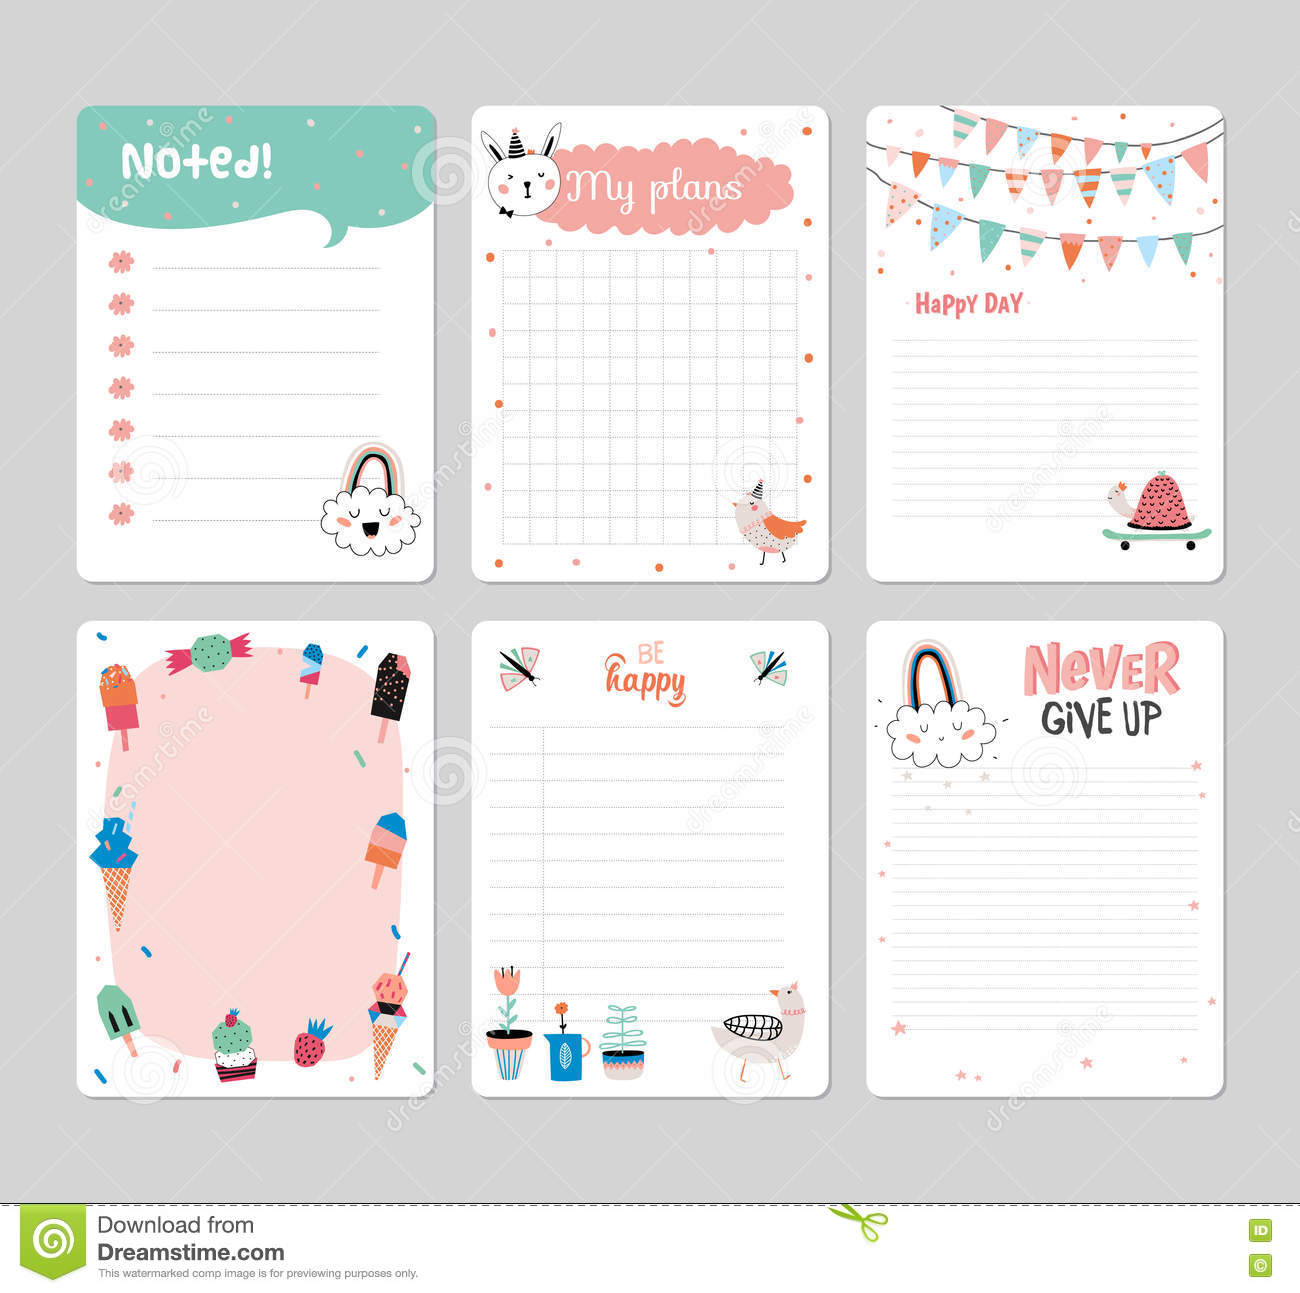 Schedule Template Summer Daily Camp Planner Calendar | Smorad intended for Summer Camp Schedule Template Blank